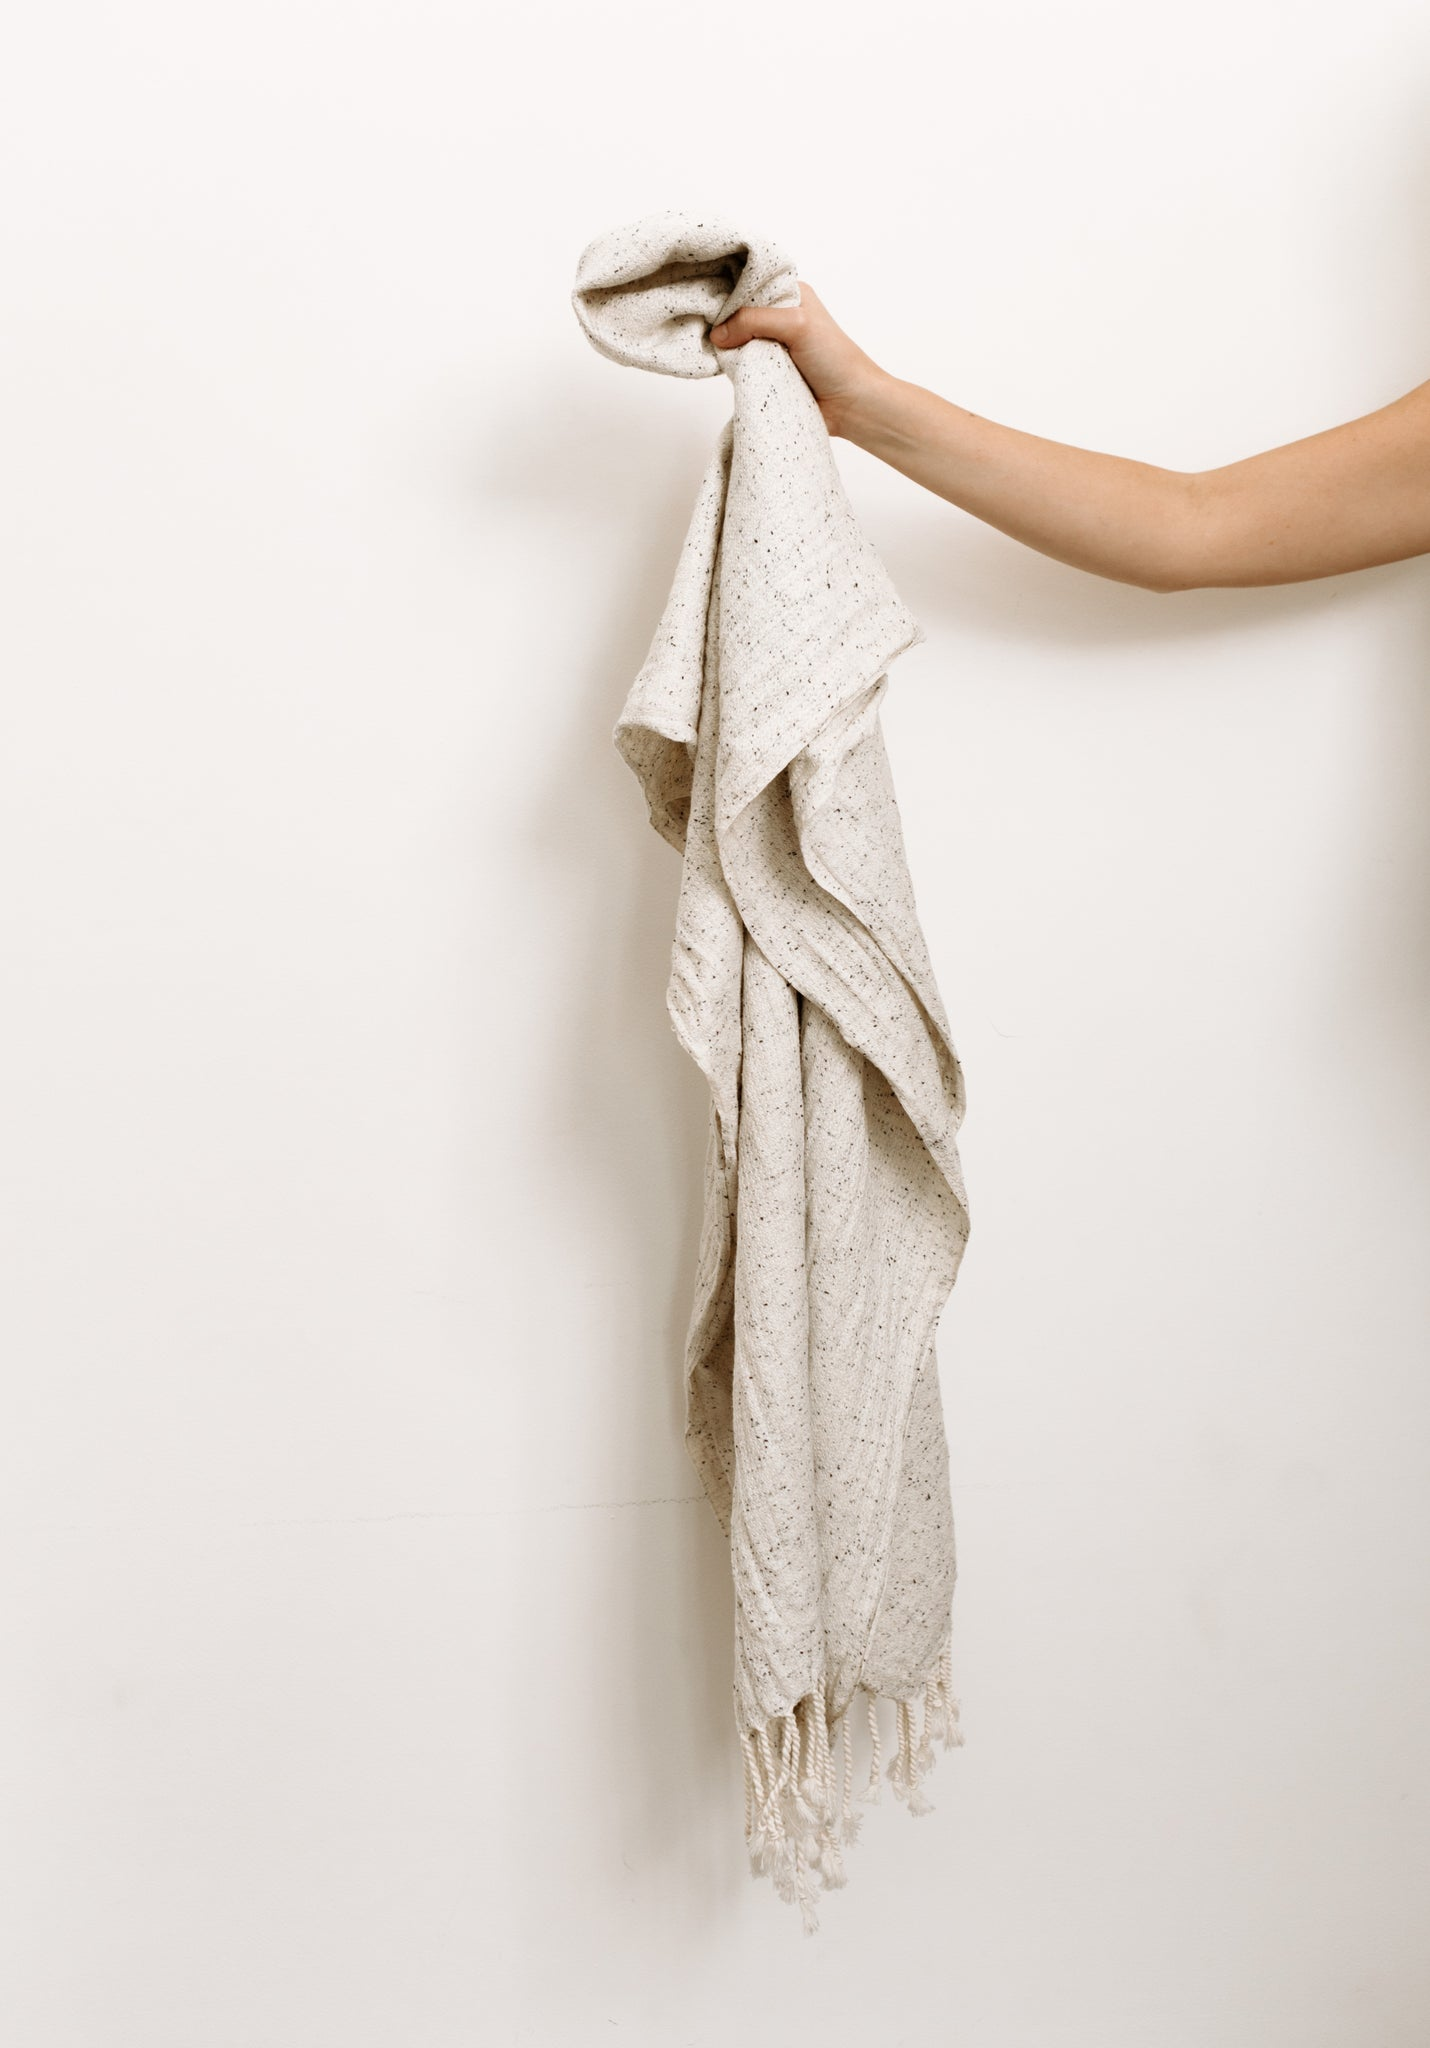 Dalga Speckled Turkish Towel Collection